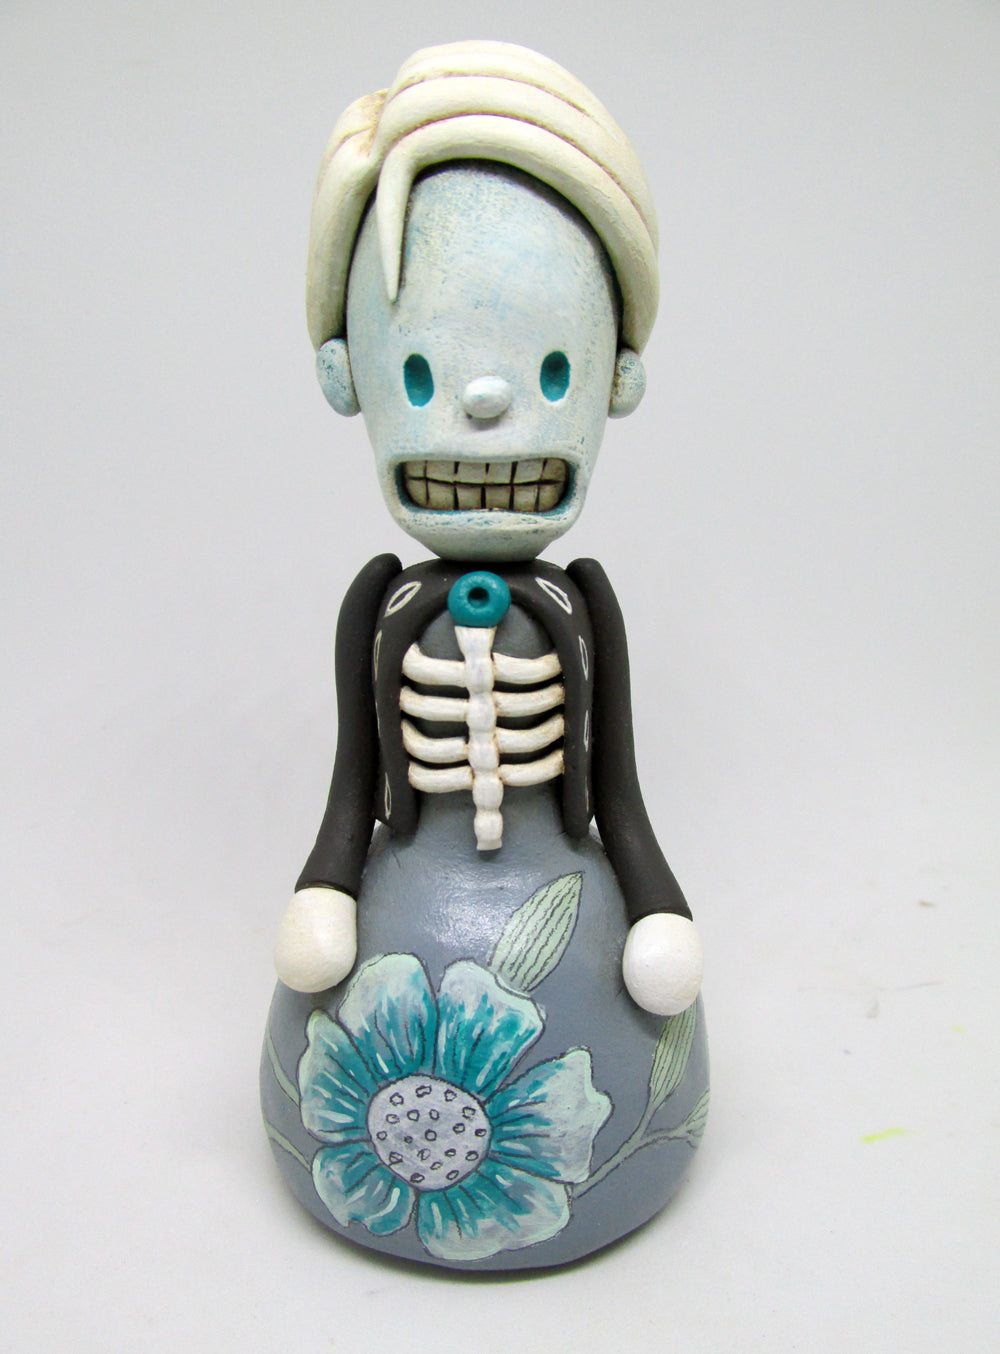 Blue Skeleton girl in dress great art character!